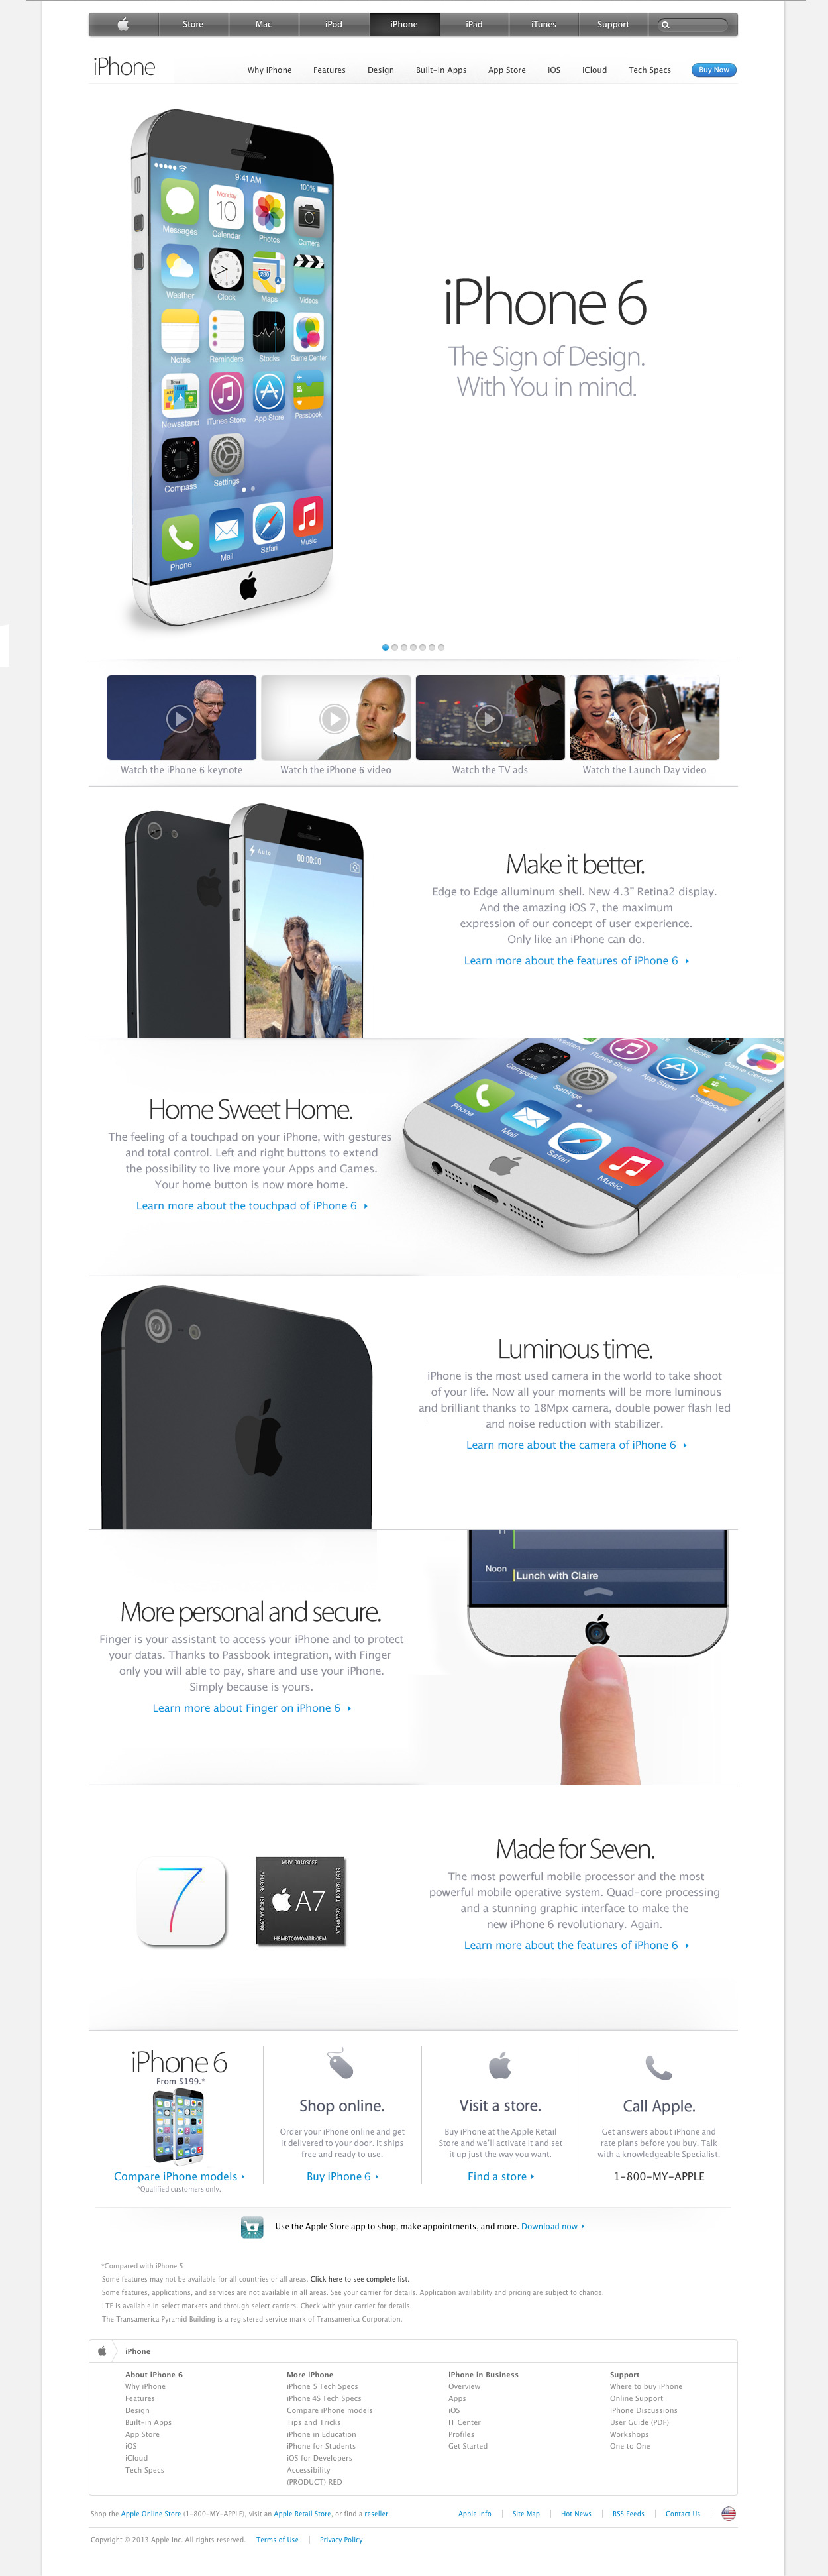 iPhone 6 Concept With iOS 7 - Slide